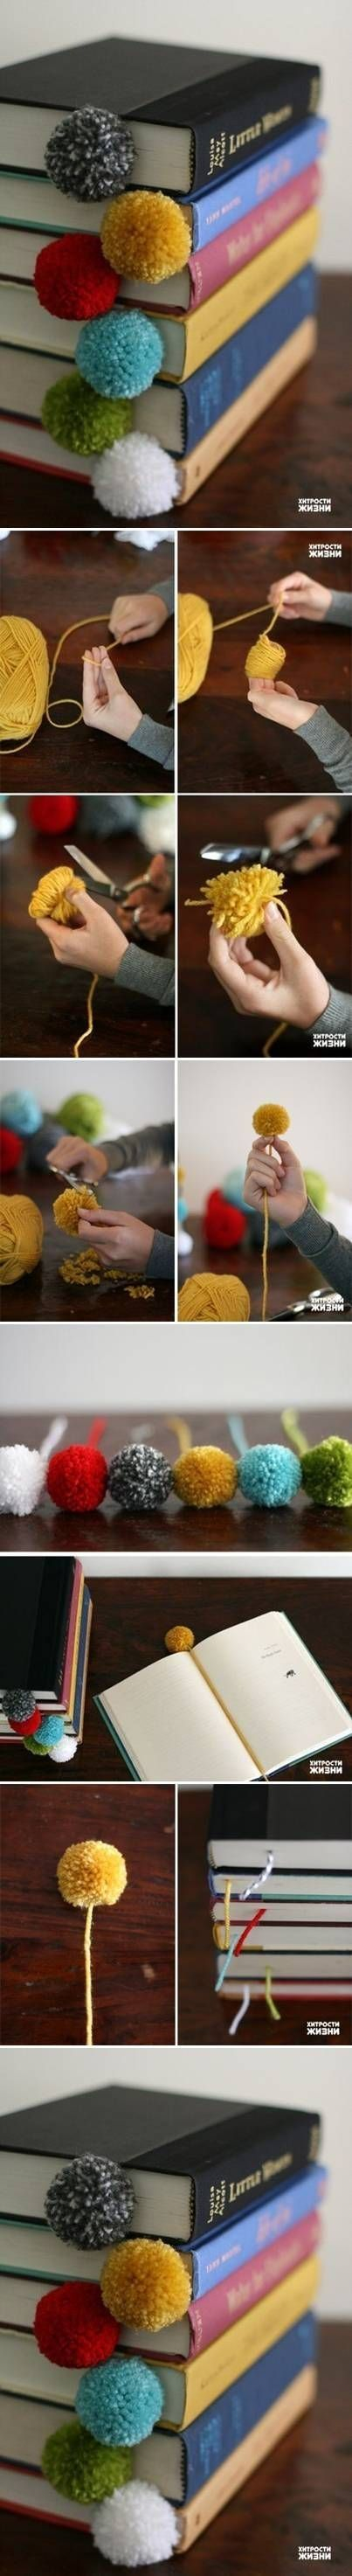 DIY Pom Pom Book Mark Pictures, Photos, and Images for Facebook, Tumblr, Pinterest, and Twitter